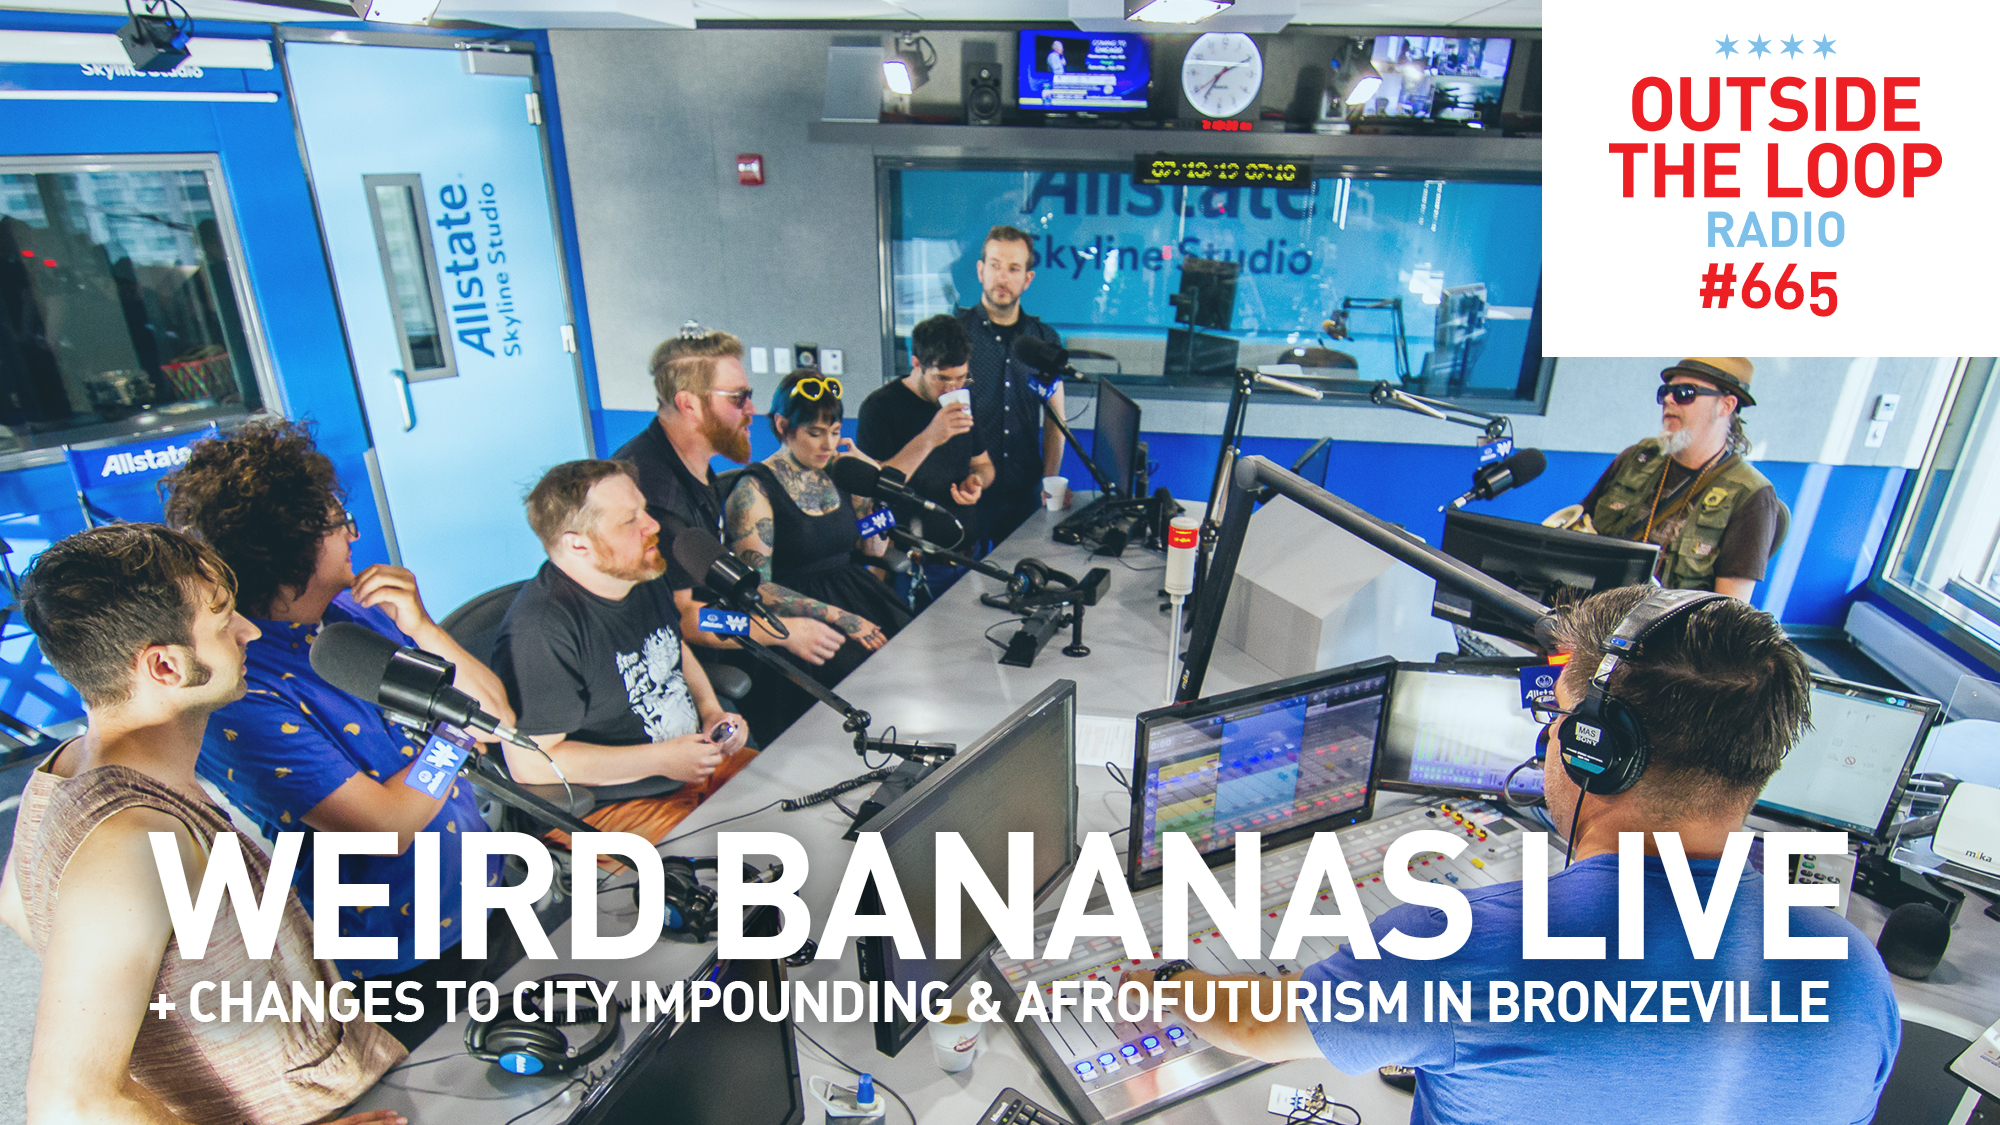 Mike Stephen welcomes the members of the local band Weird Bananas into the studio.